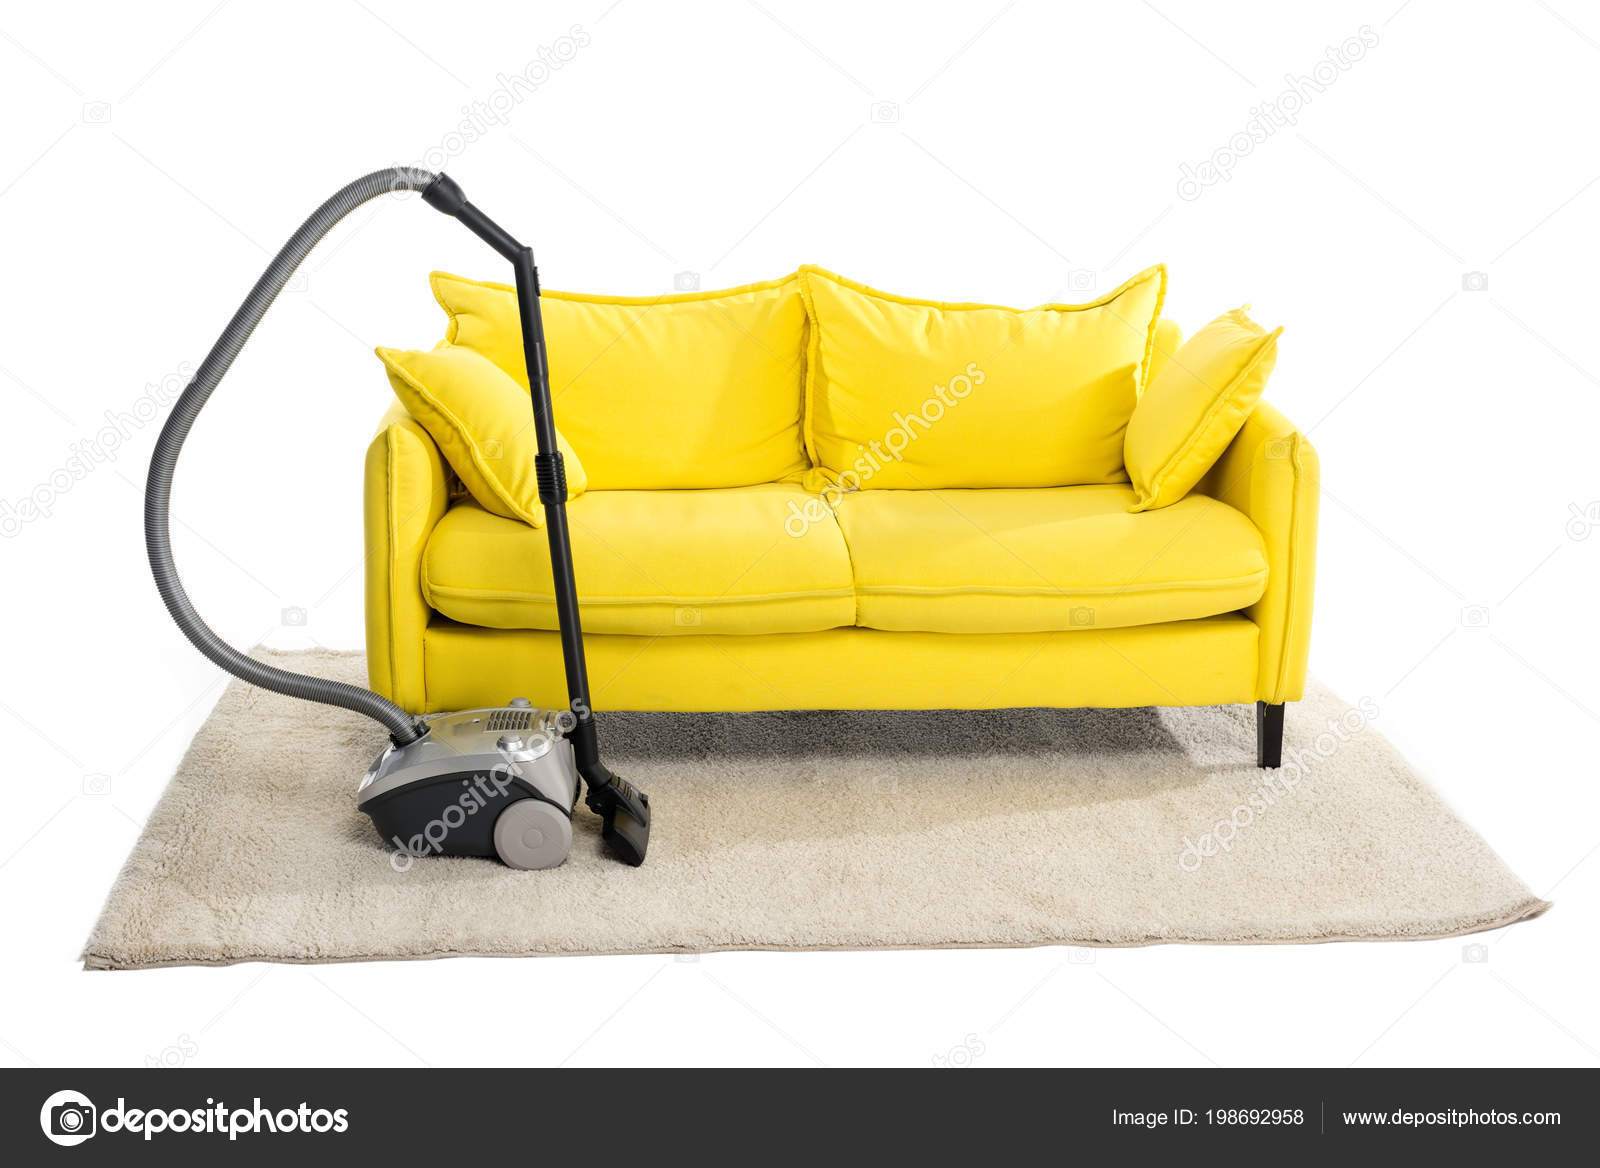 Bright Yellow Sofa And Vacuum Cleaner On Carpet Isolated On White U2014 Photo  By IgorVetushko